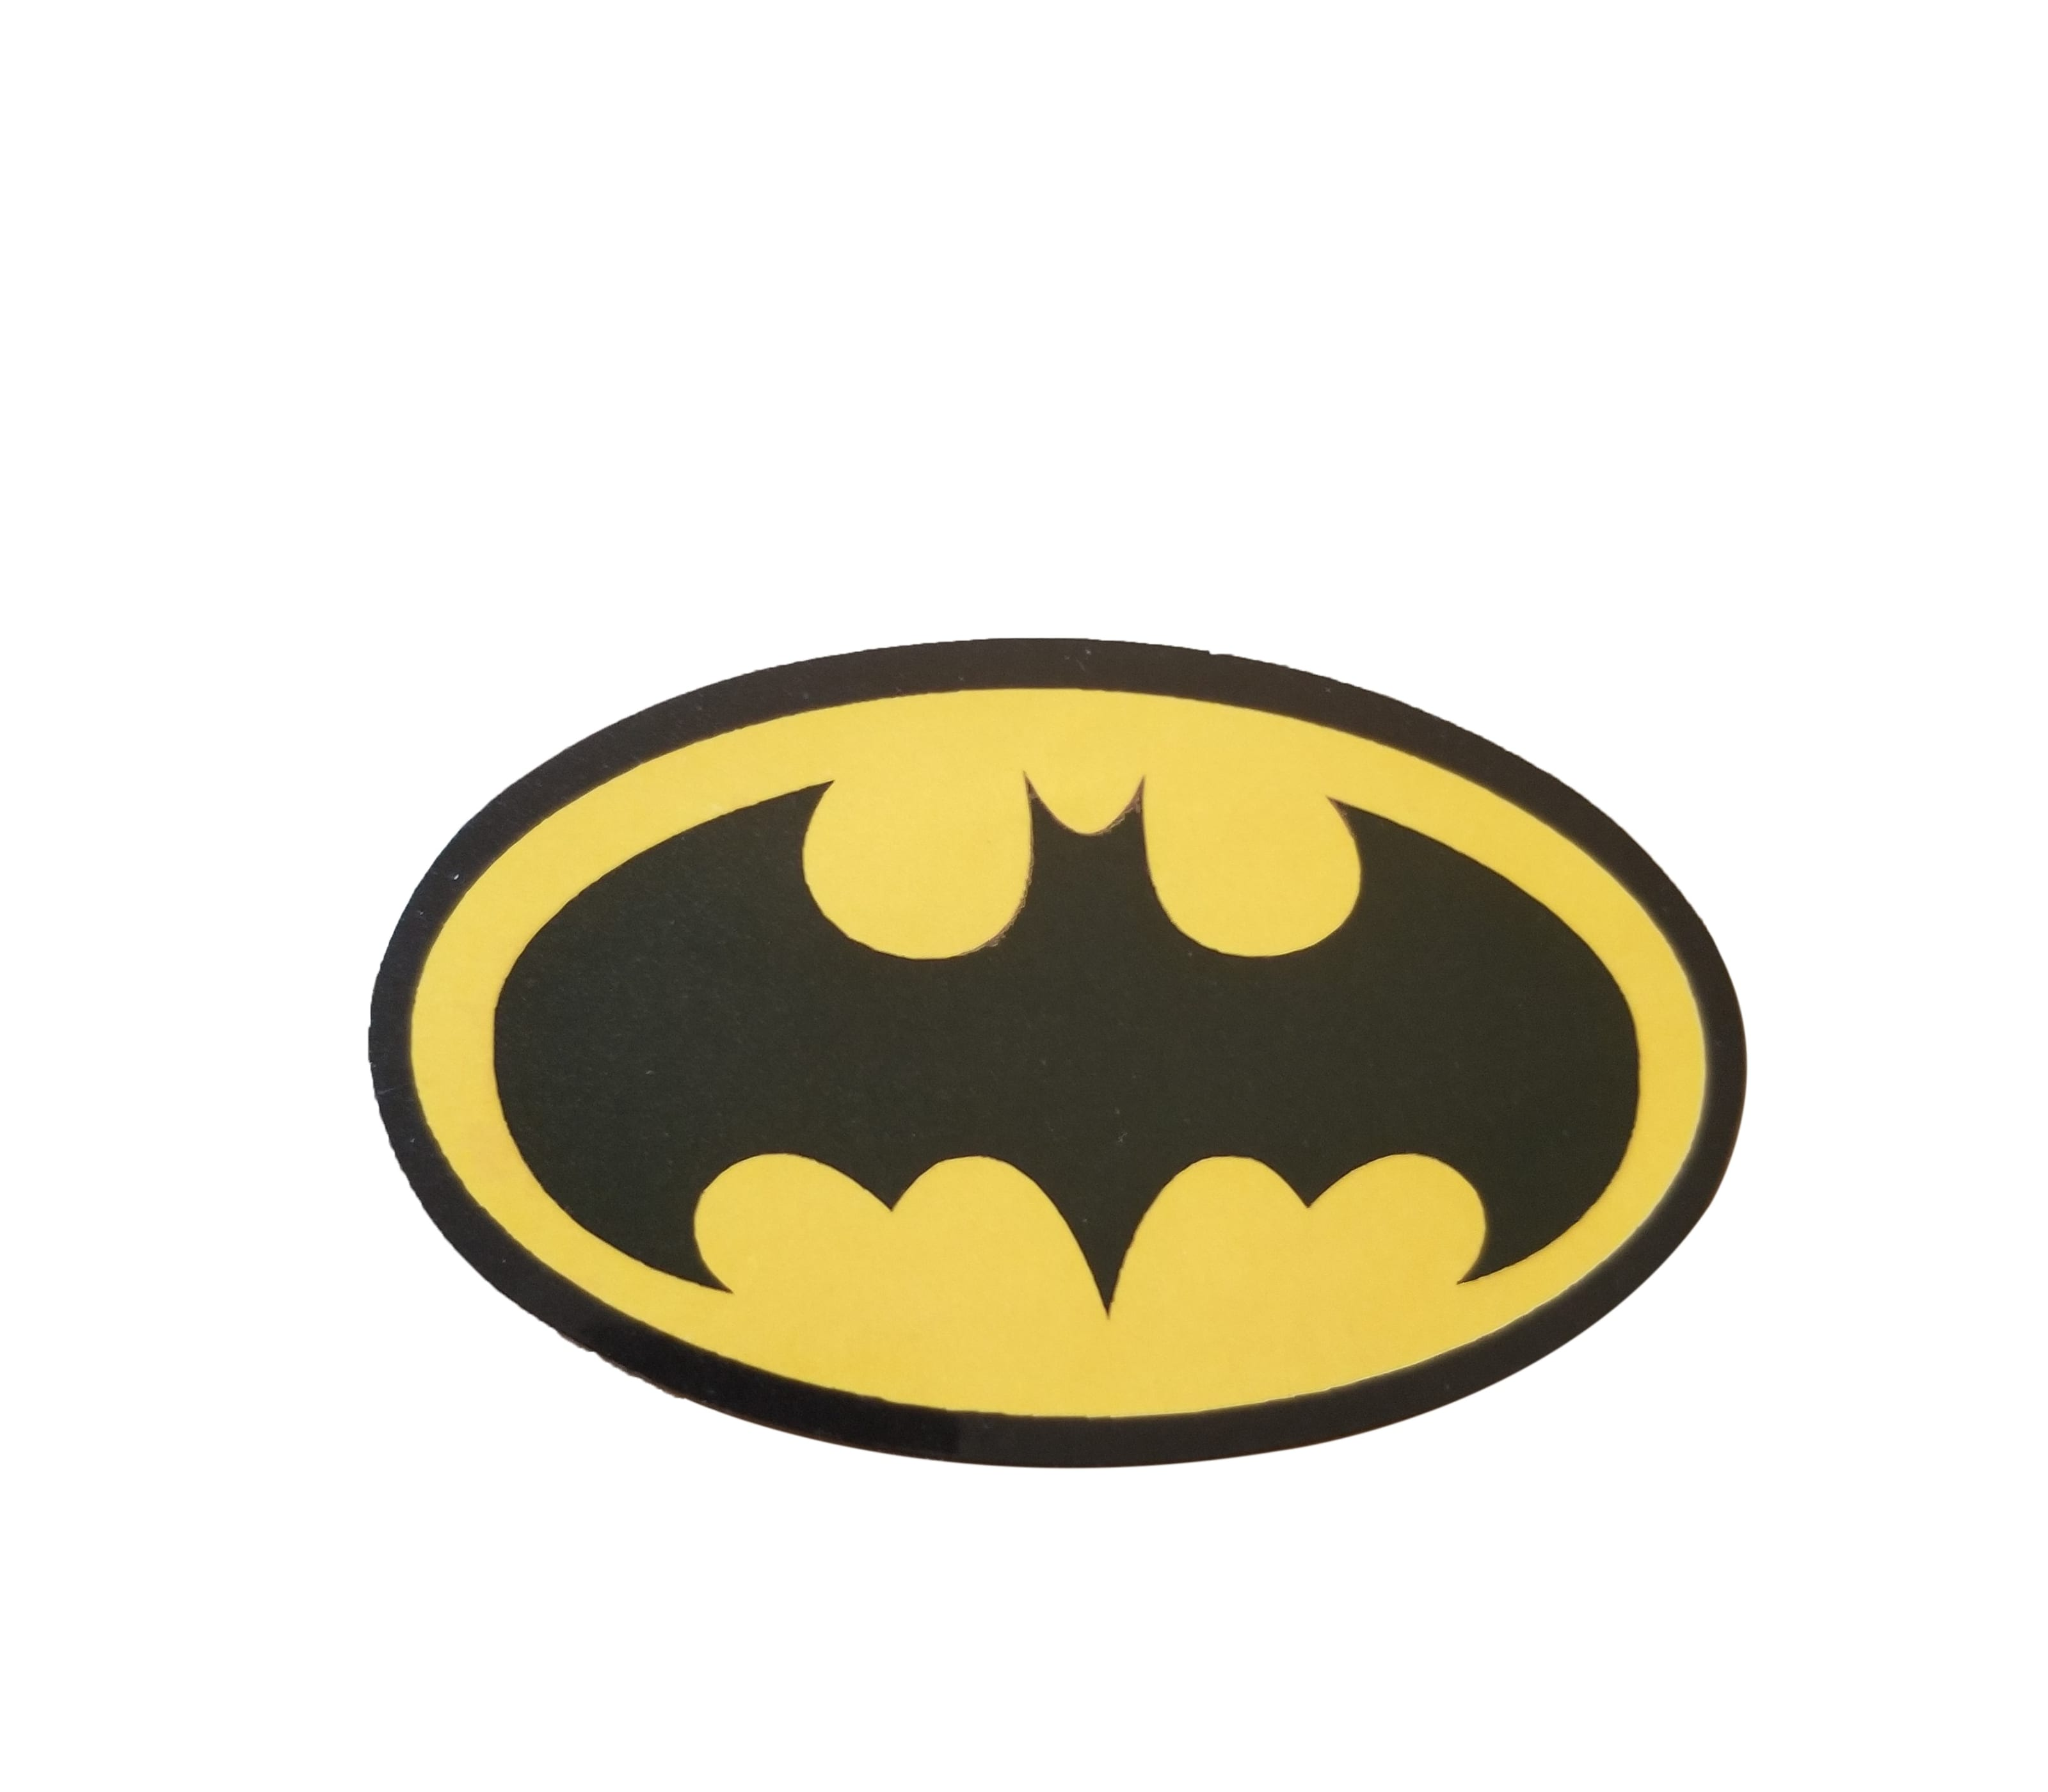 Original Black and Yellow Batman Logo